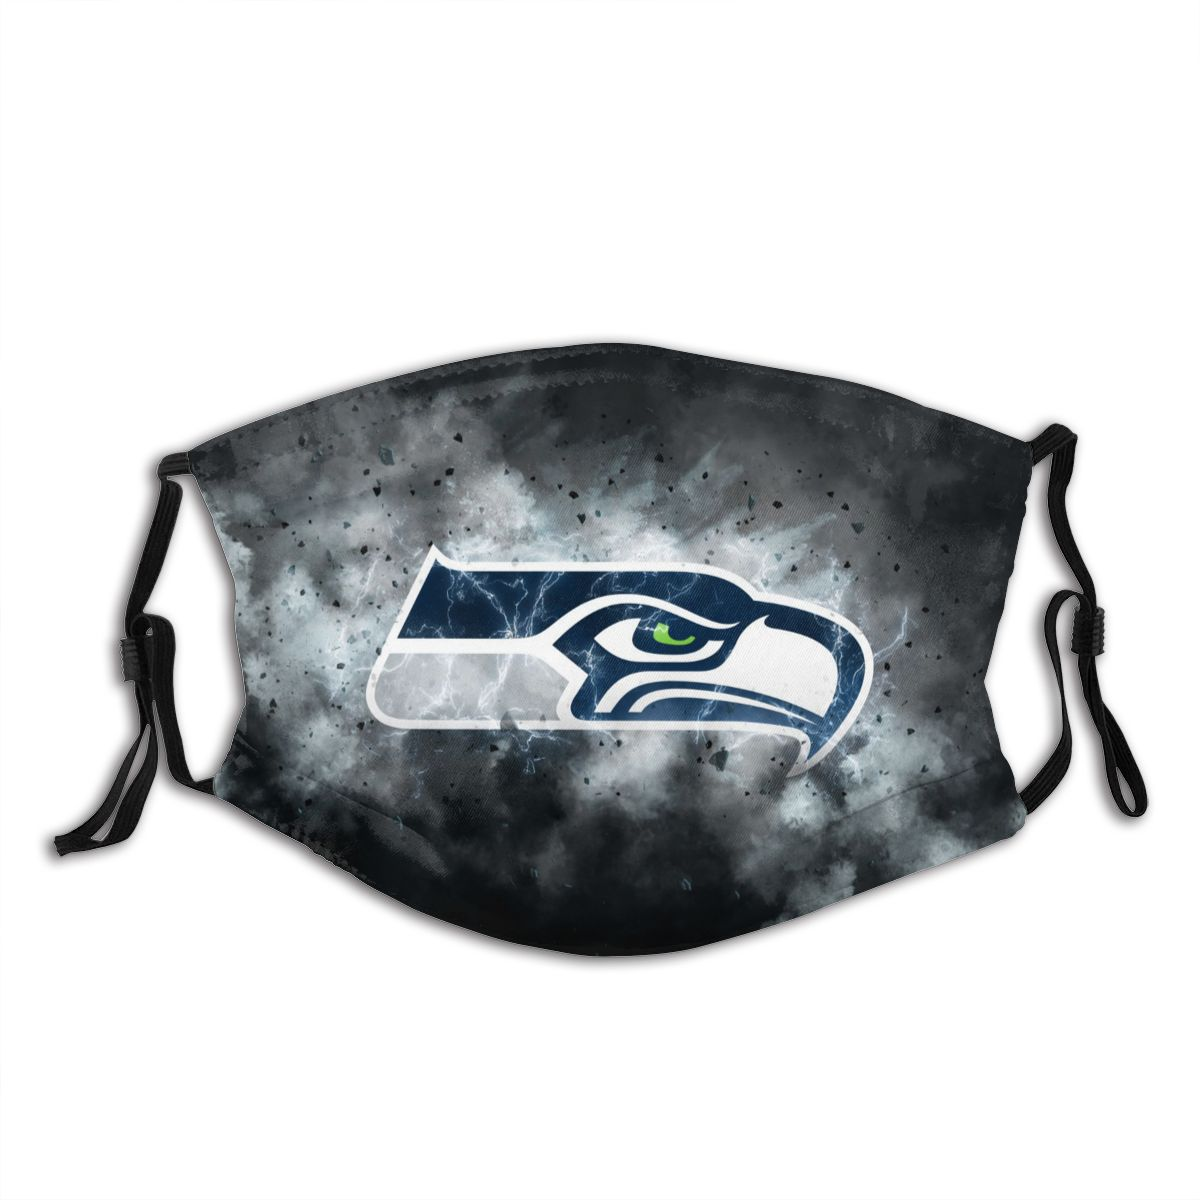 Seahawks Illustration Art Adult Cloth Face Covering With Filter